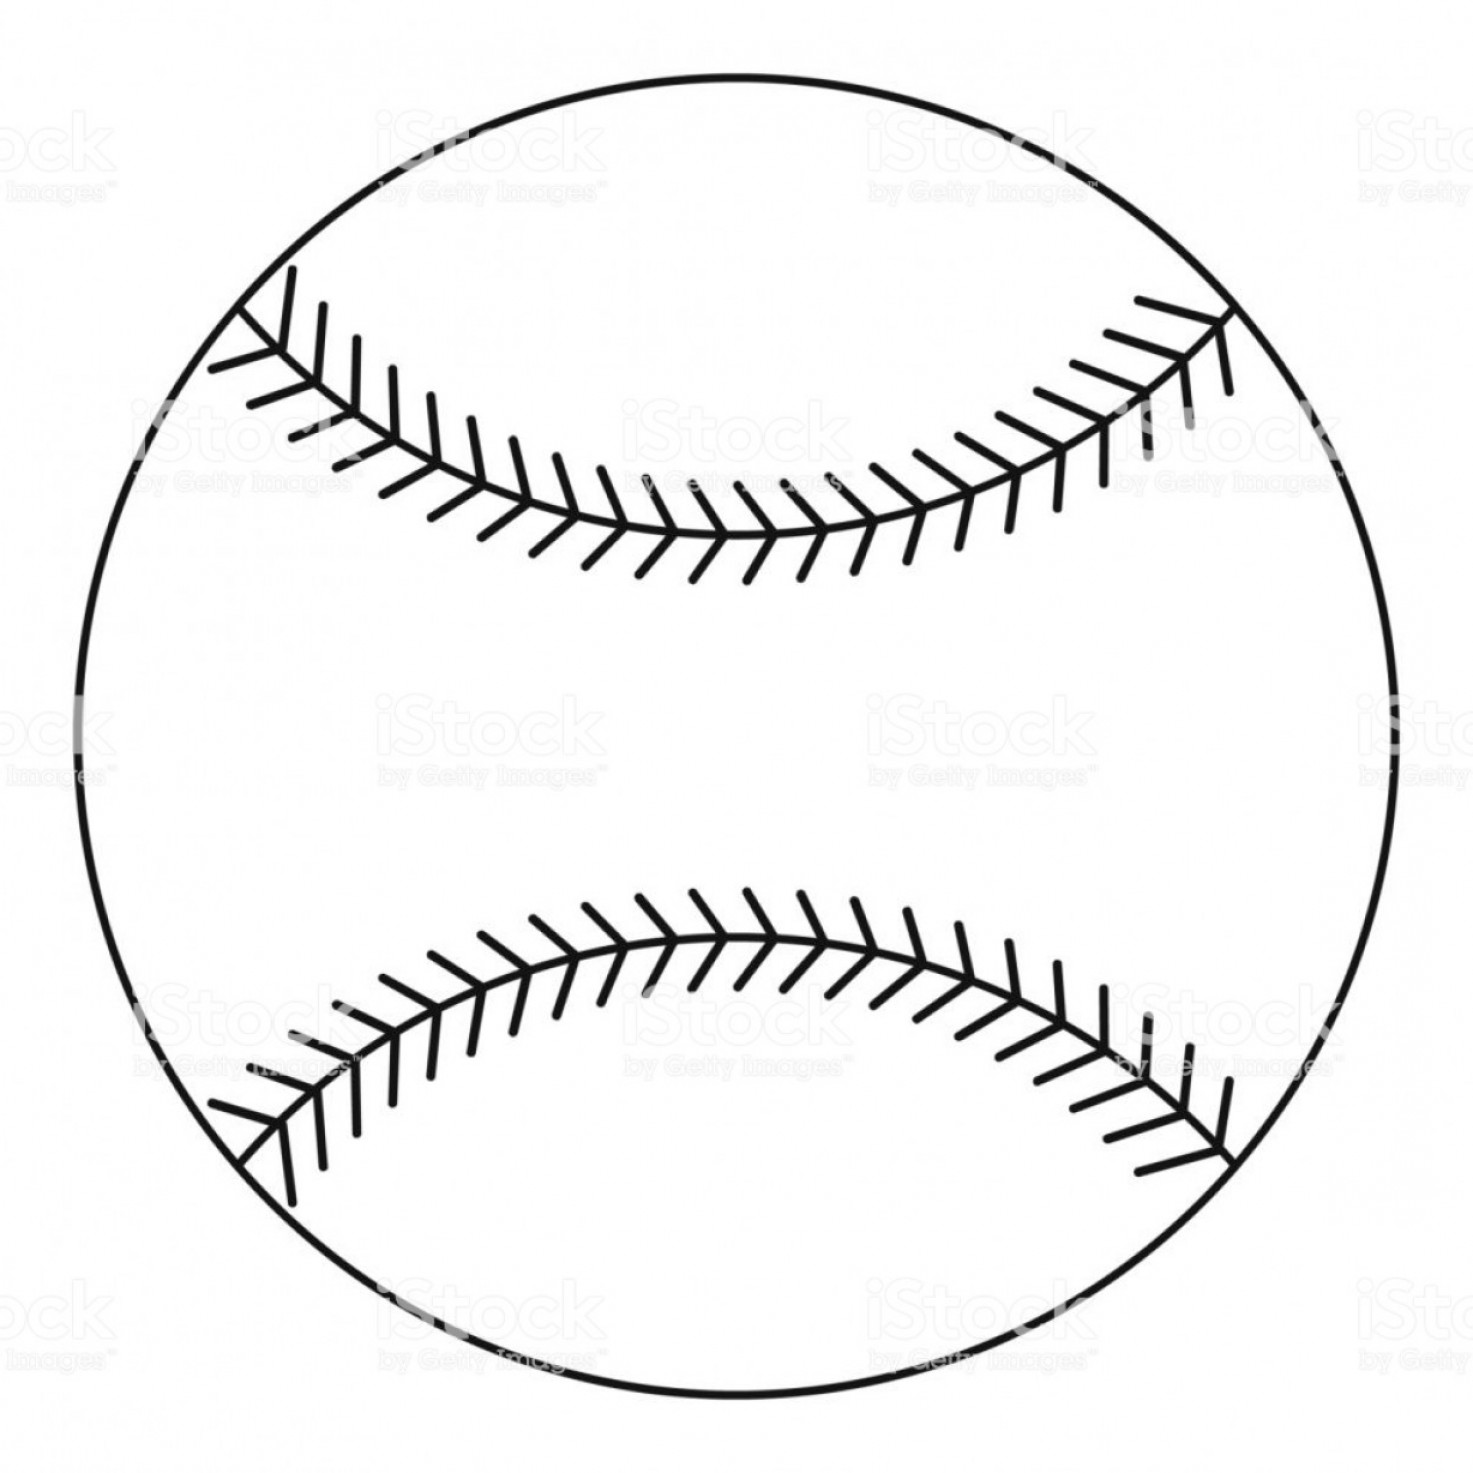 Chicago White Sox Logo Vector EPS: Baseball Ball Icon Outline Style Gm